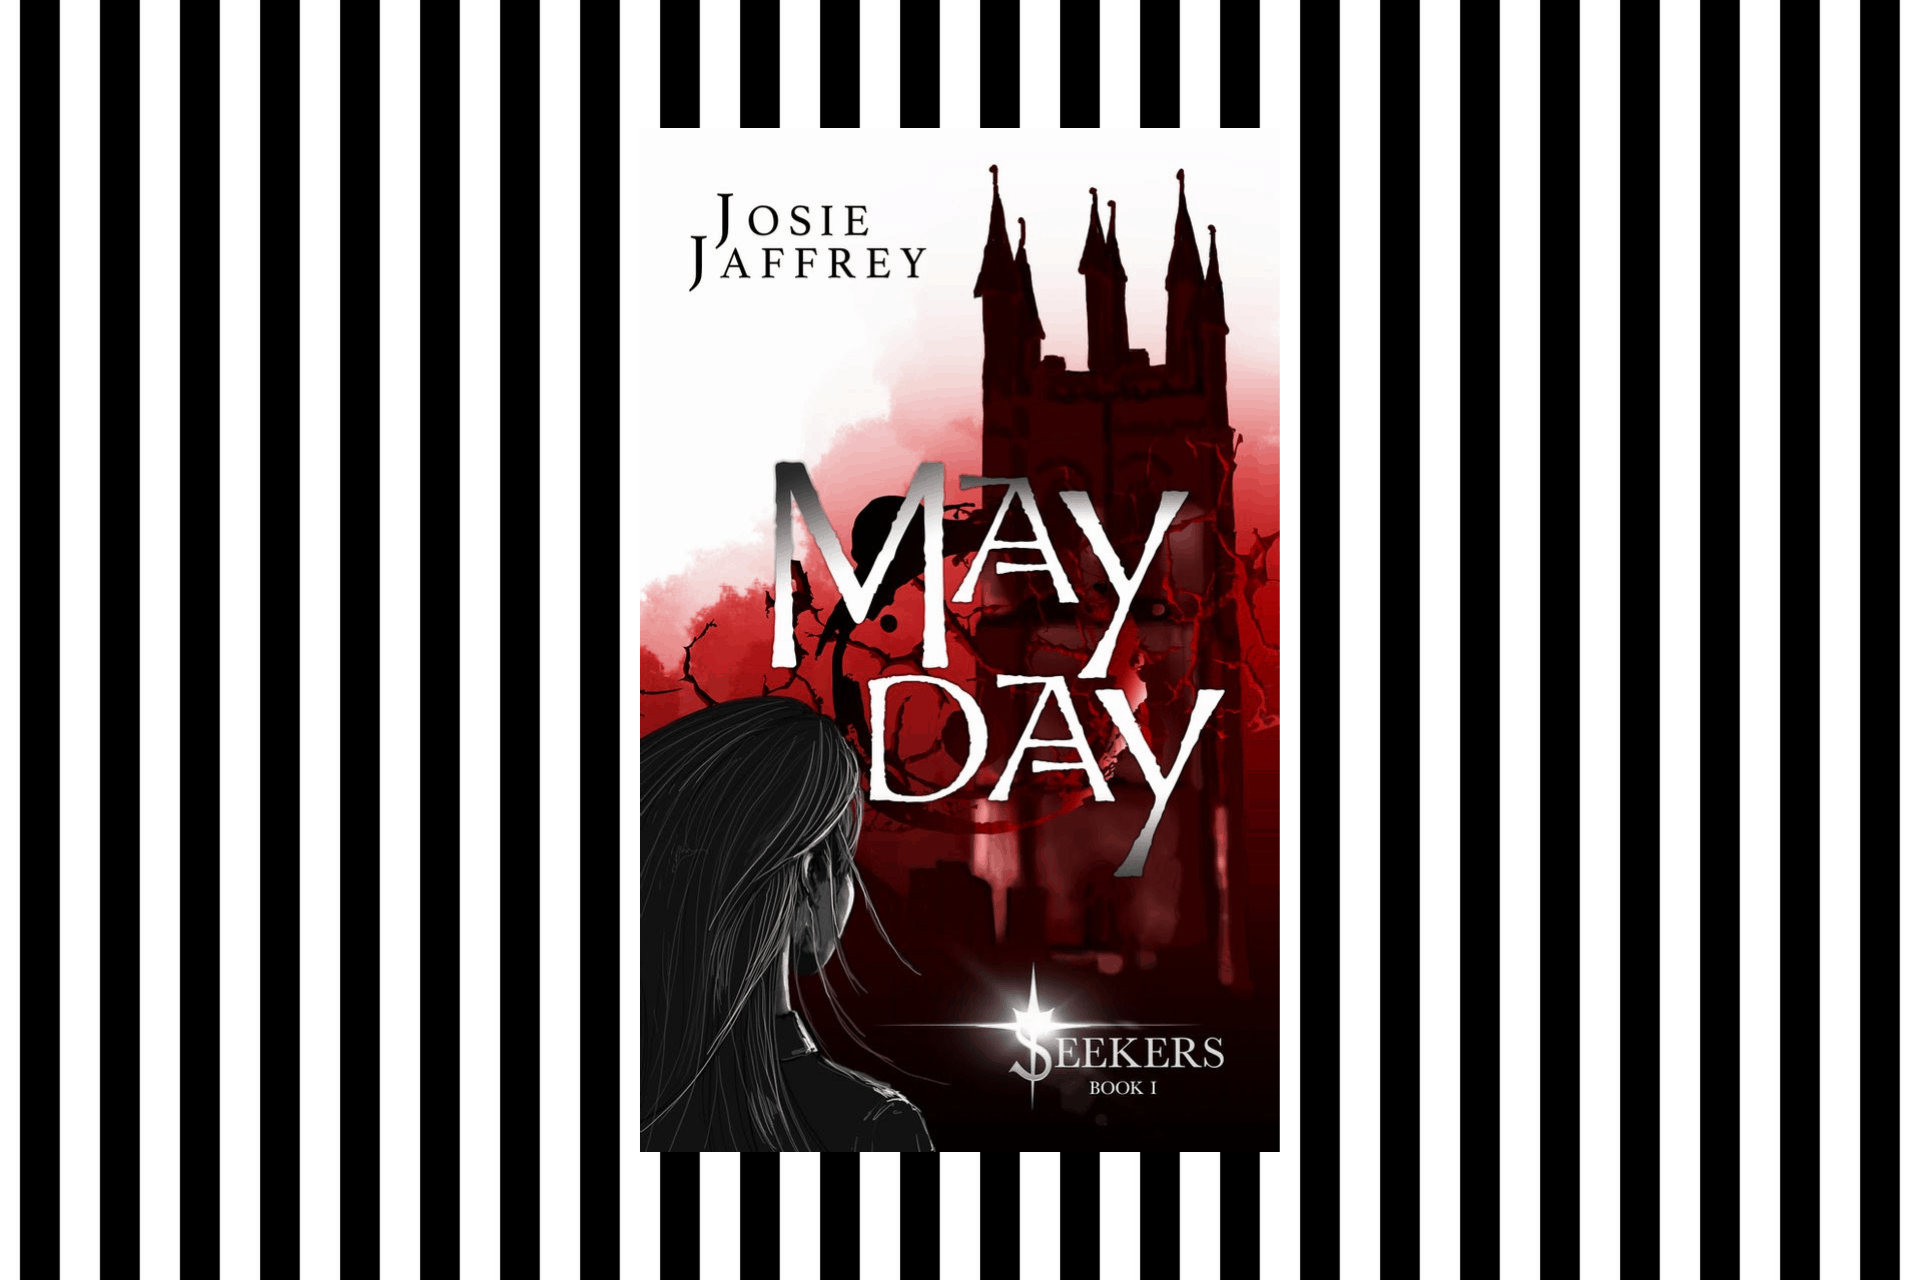 The cover of May Day by Josie Jaffrey